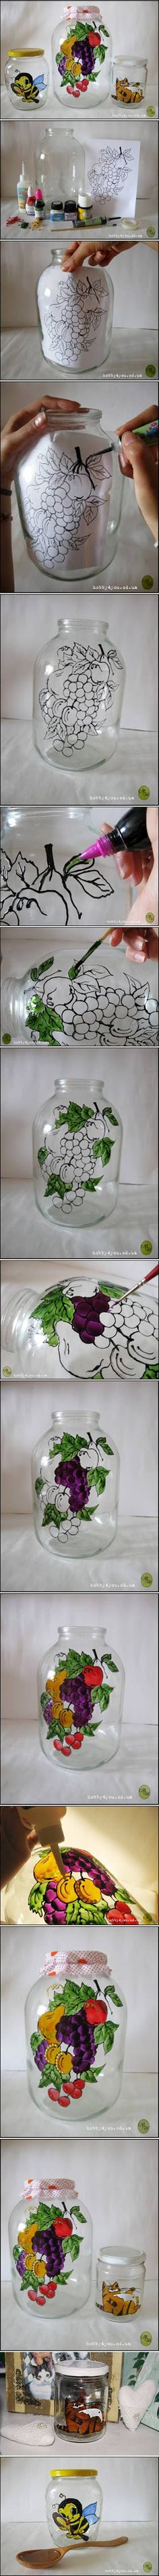 DIY Painting Decororation on Glass Jar